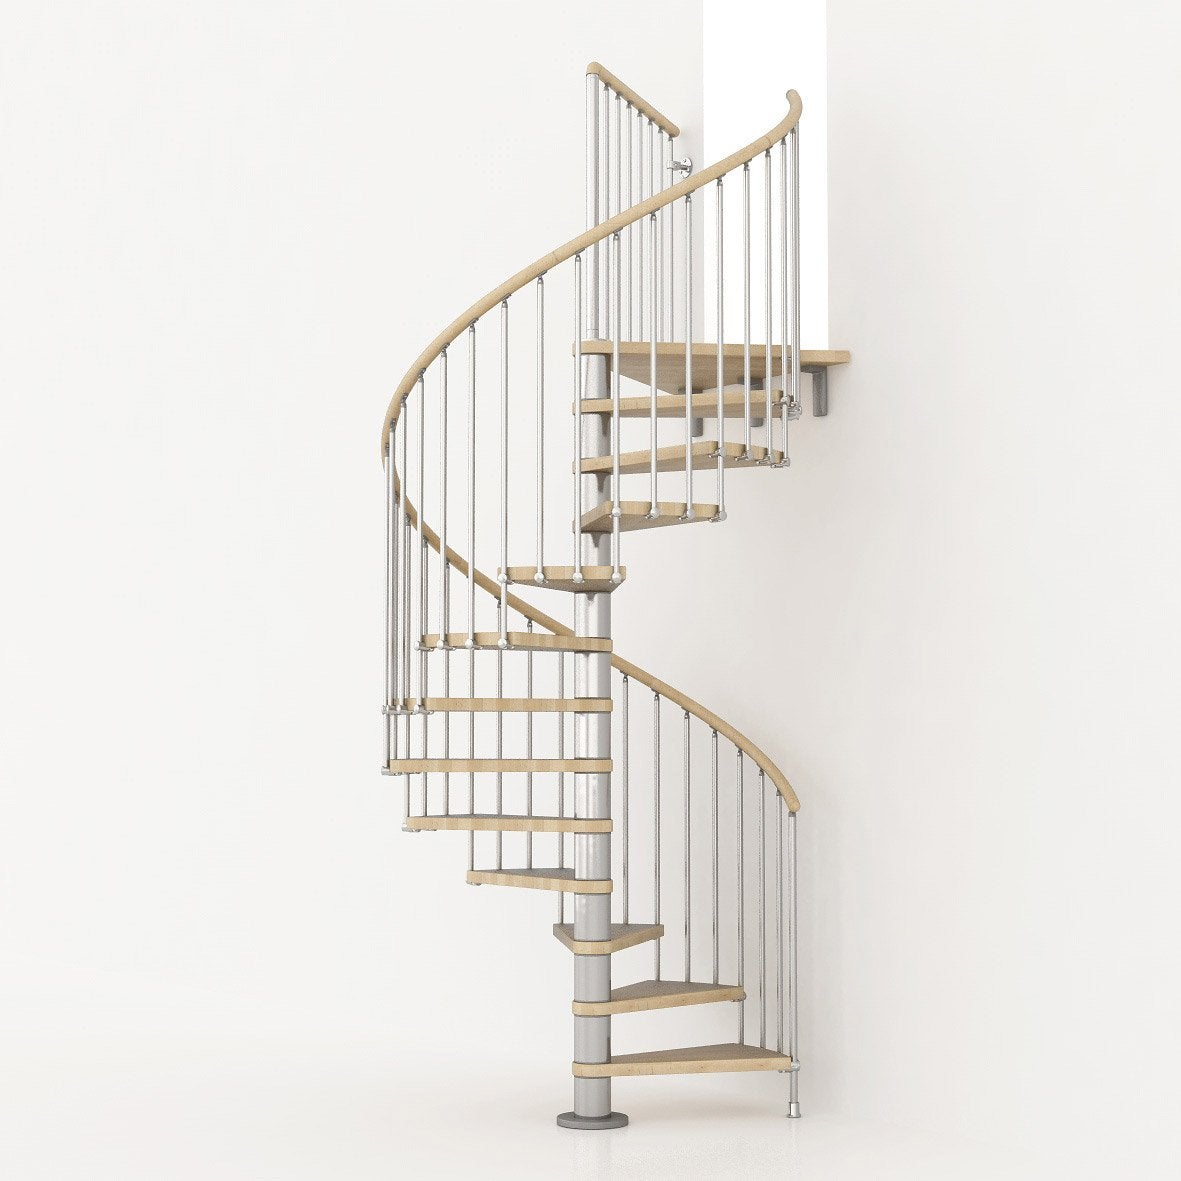 Escalier colima on rond ring structure m tal marche bois for Fabrication escalier beton interieur